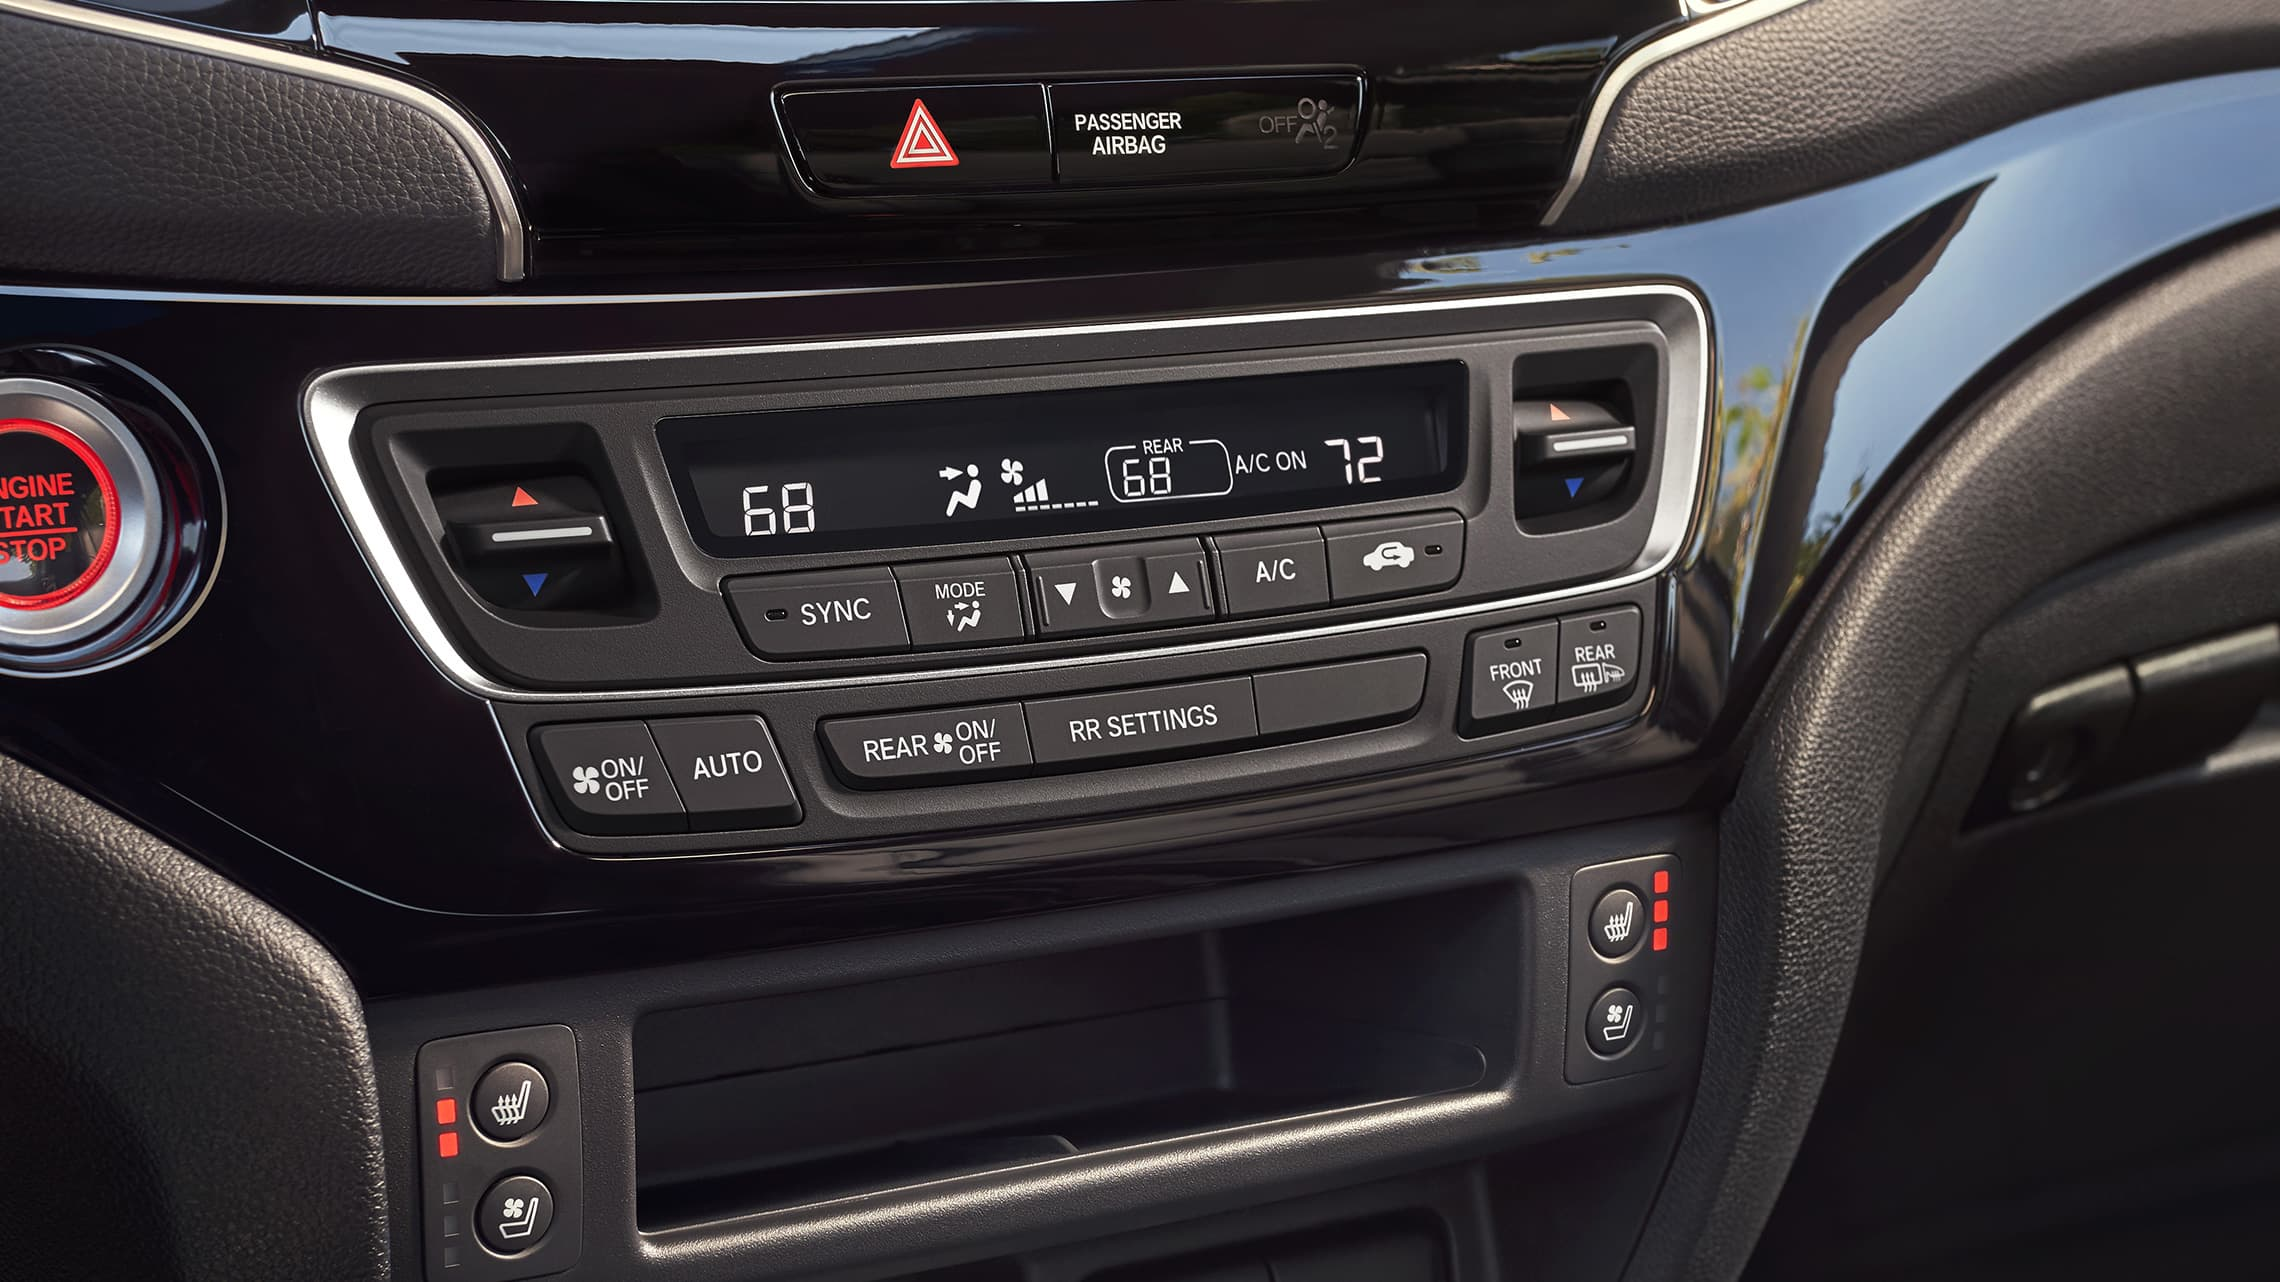 Tri-zone automatic climate control detail on the 2021 Honda Passport Elite with Black Leather interior.